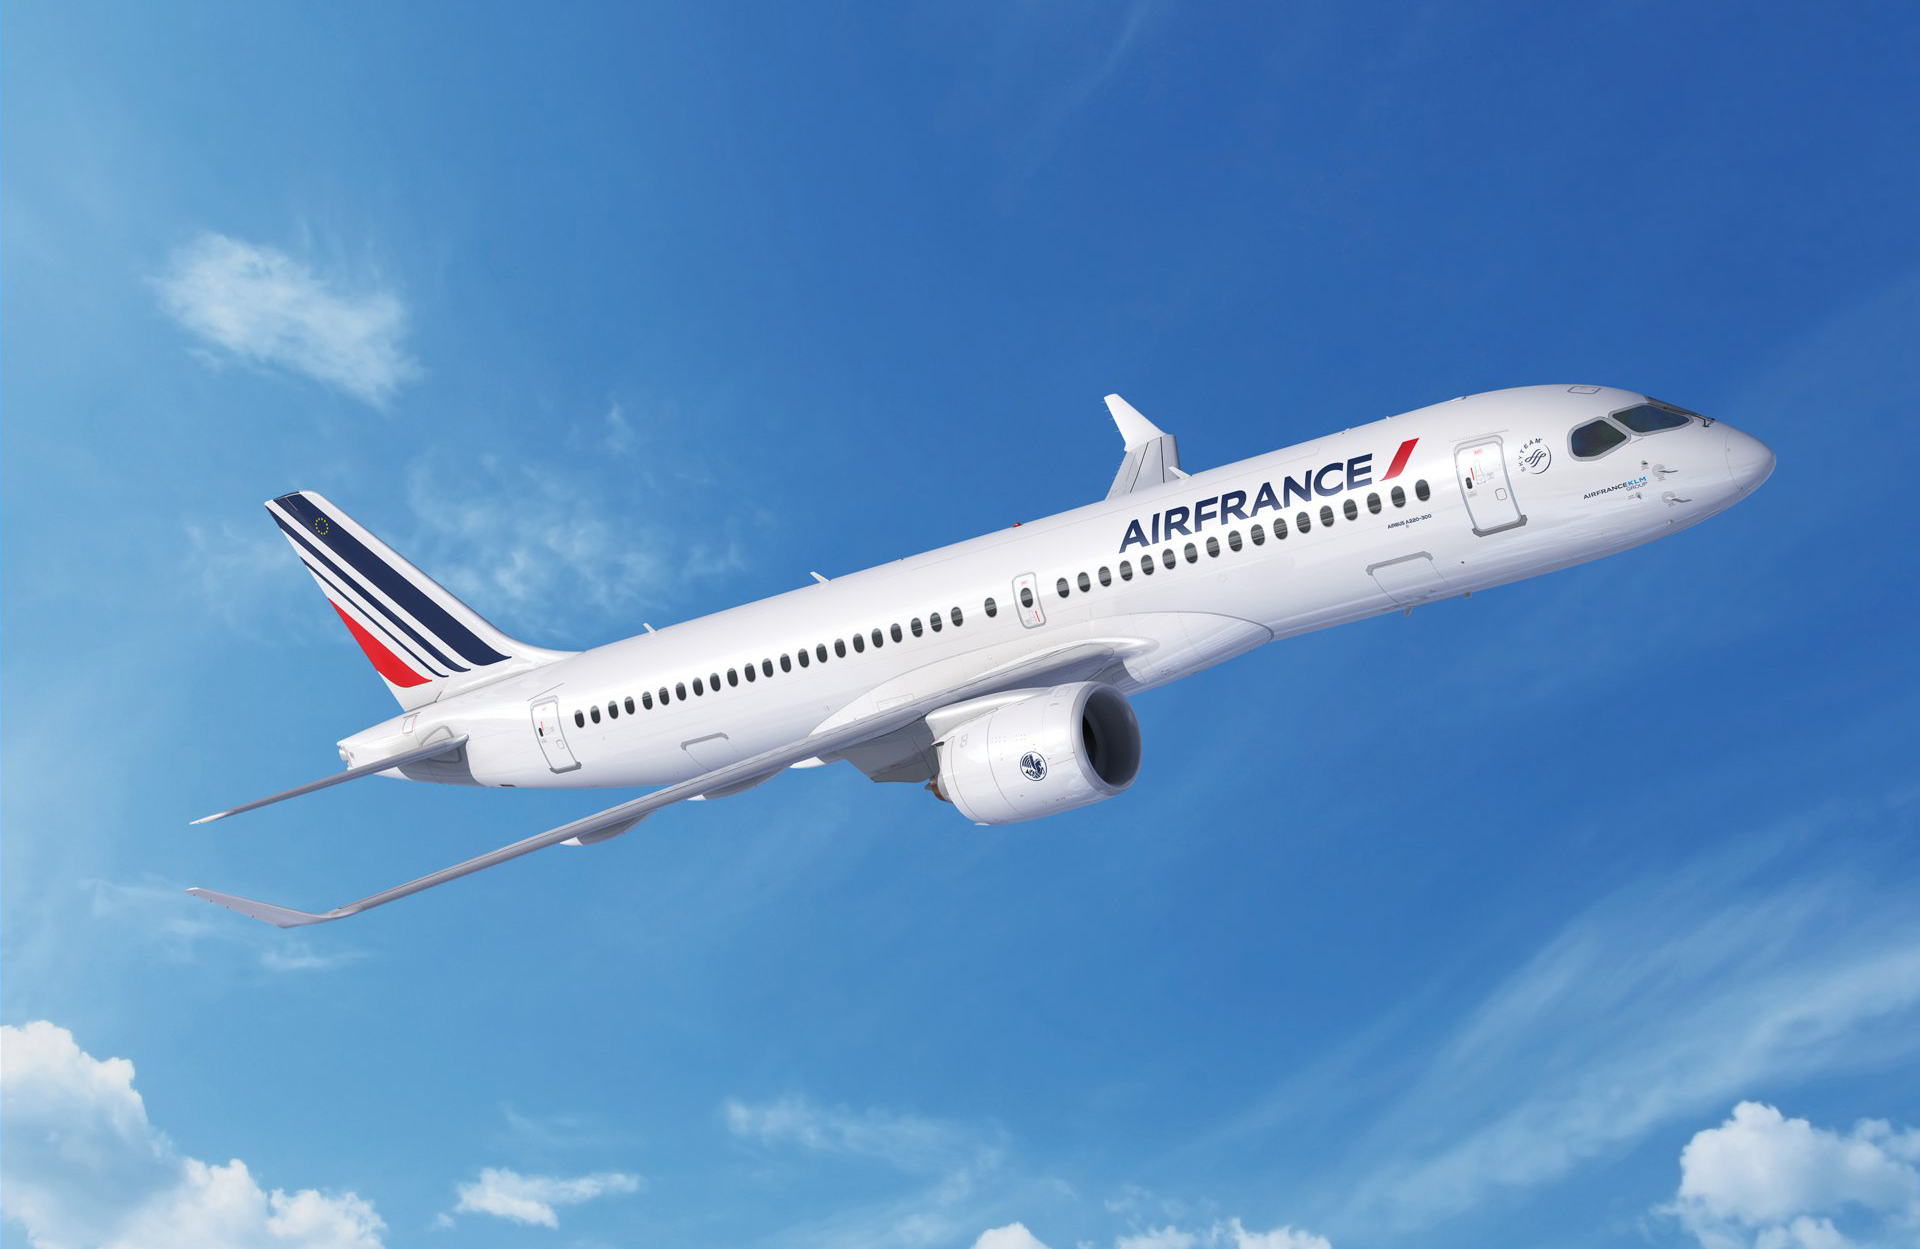 Case Study: How Air France boosts performance with cross-channel customer journeys